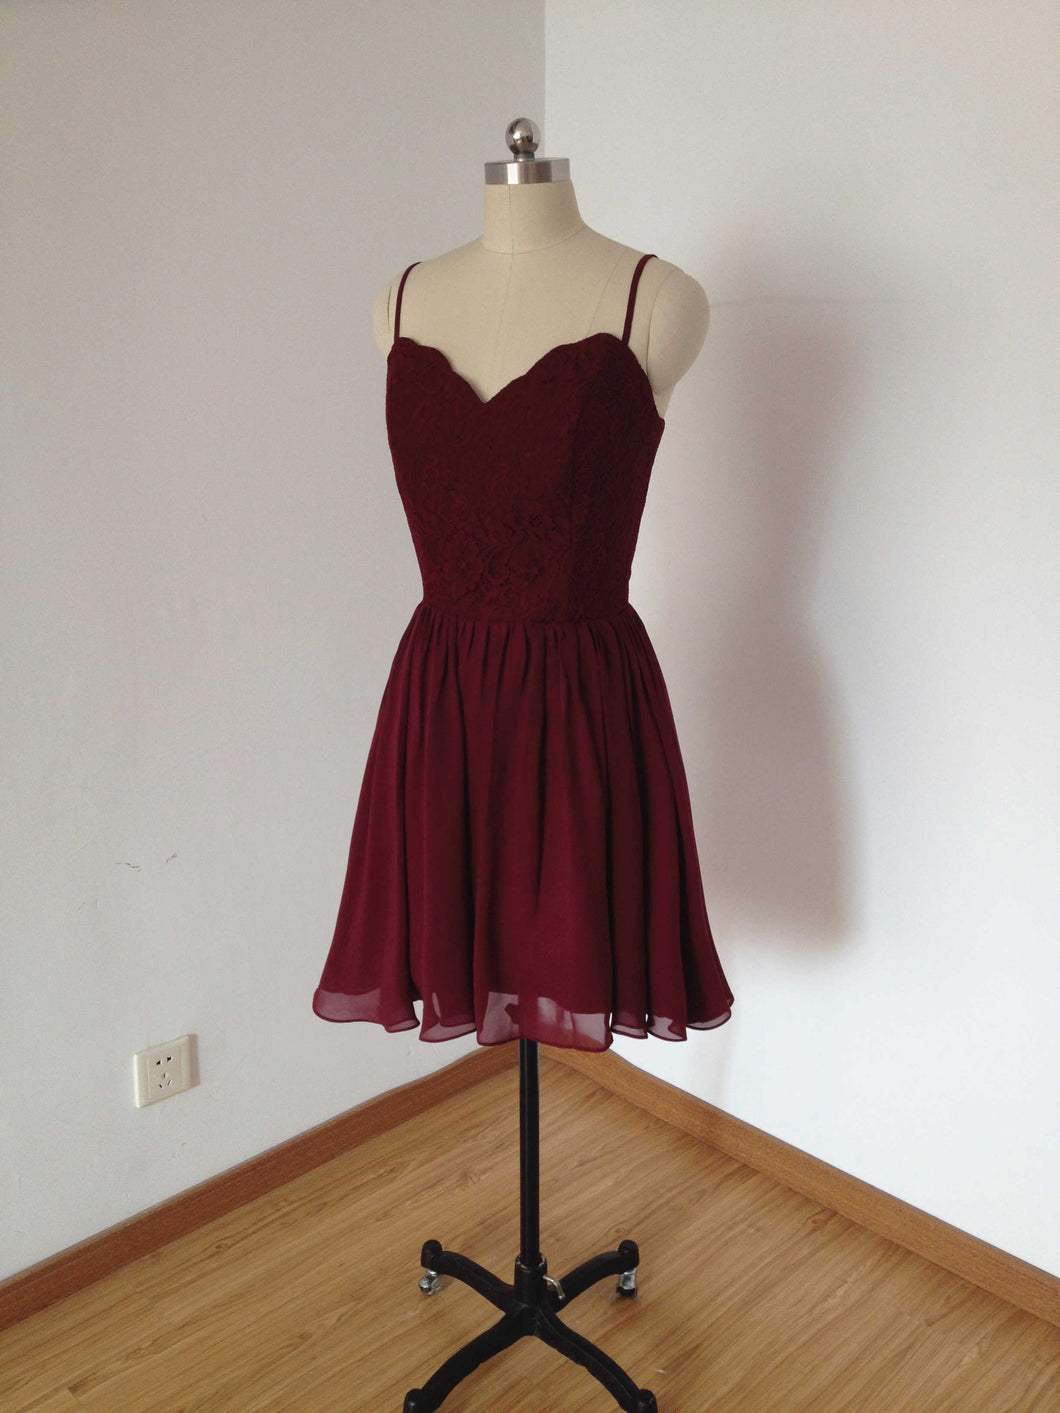 Spaghetti Straps Burgundy Lace Chiffon Short Homecoming Dress